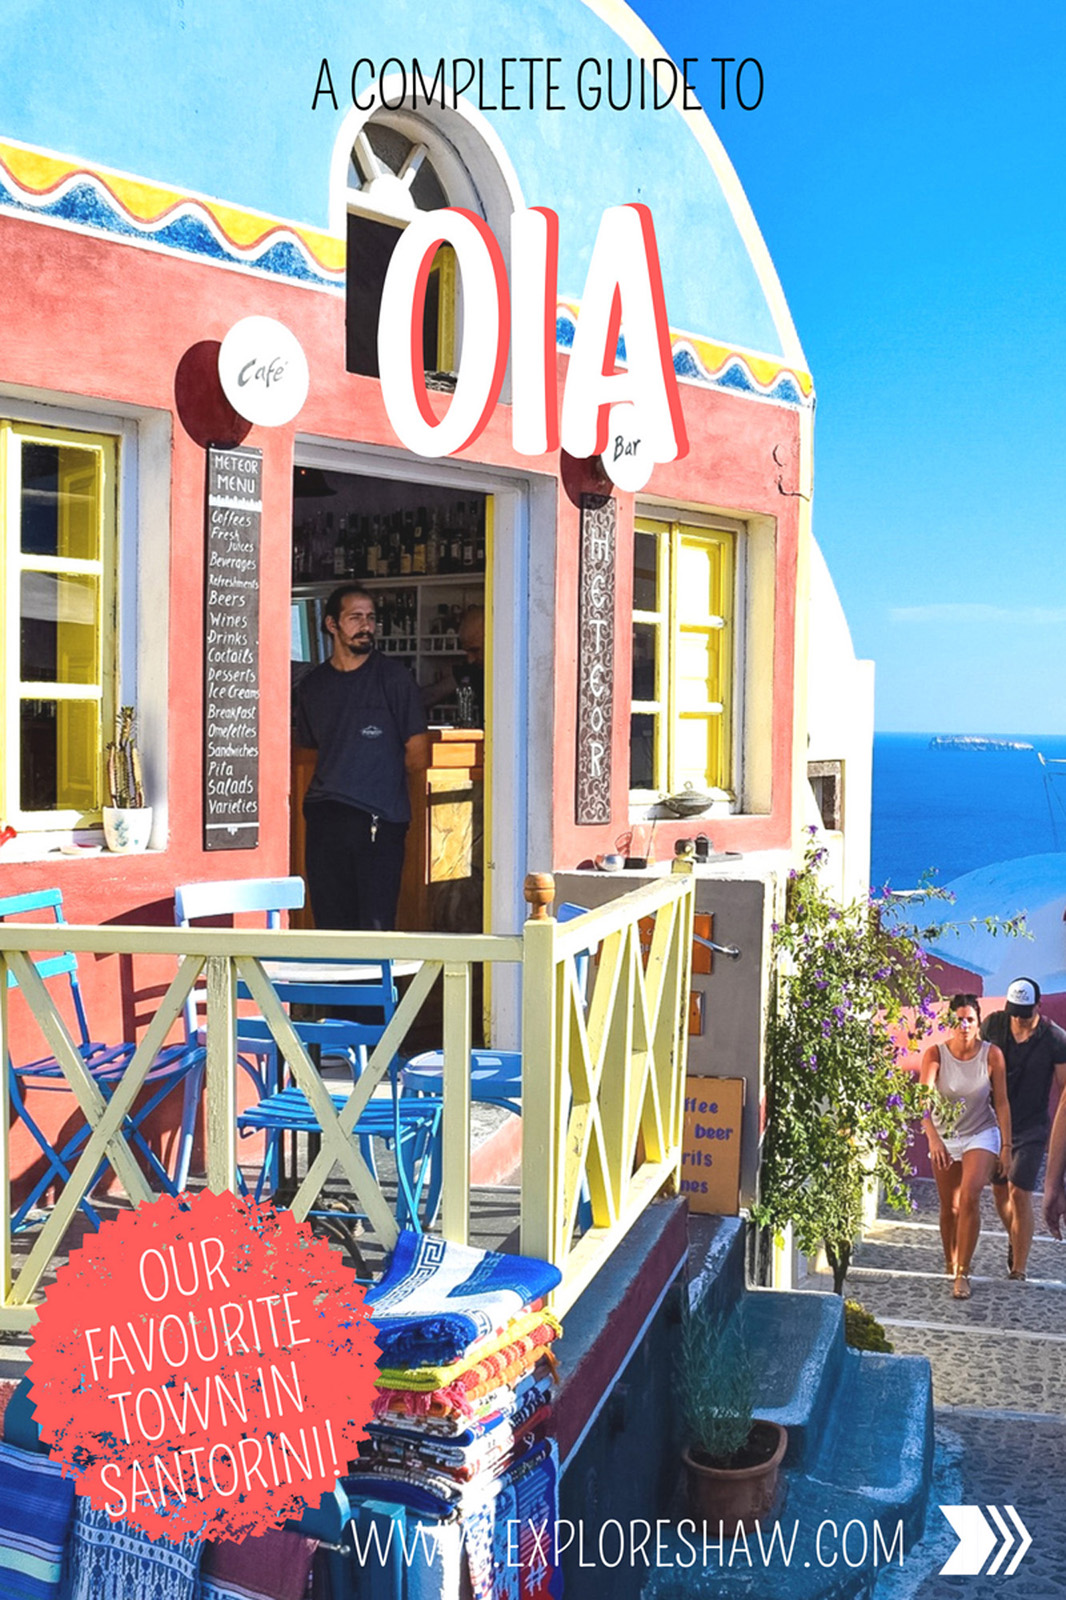 A COMPLETE GUIDE TO OIA